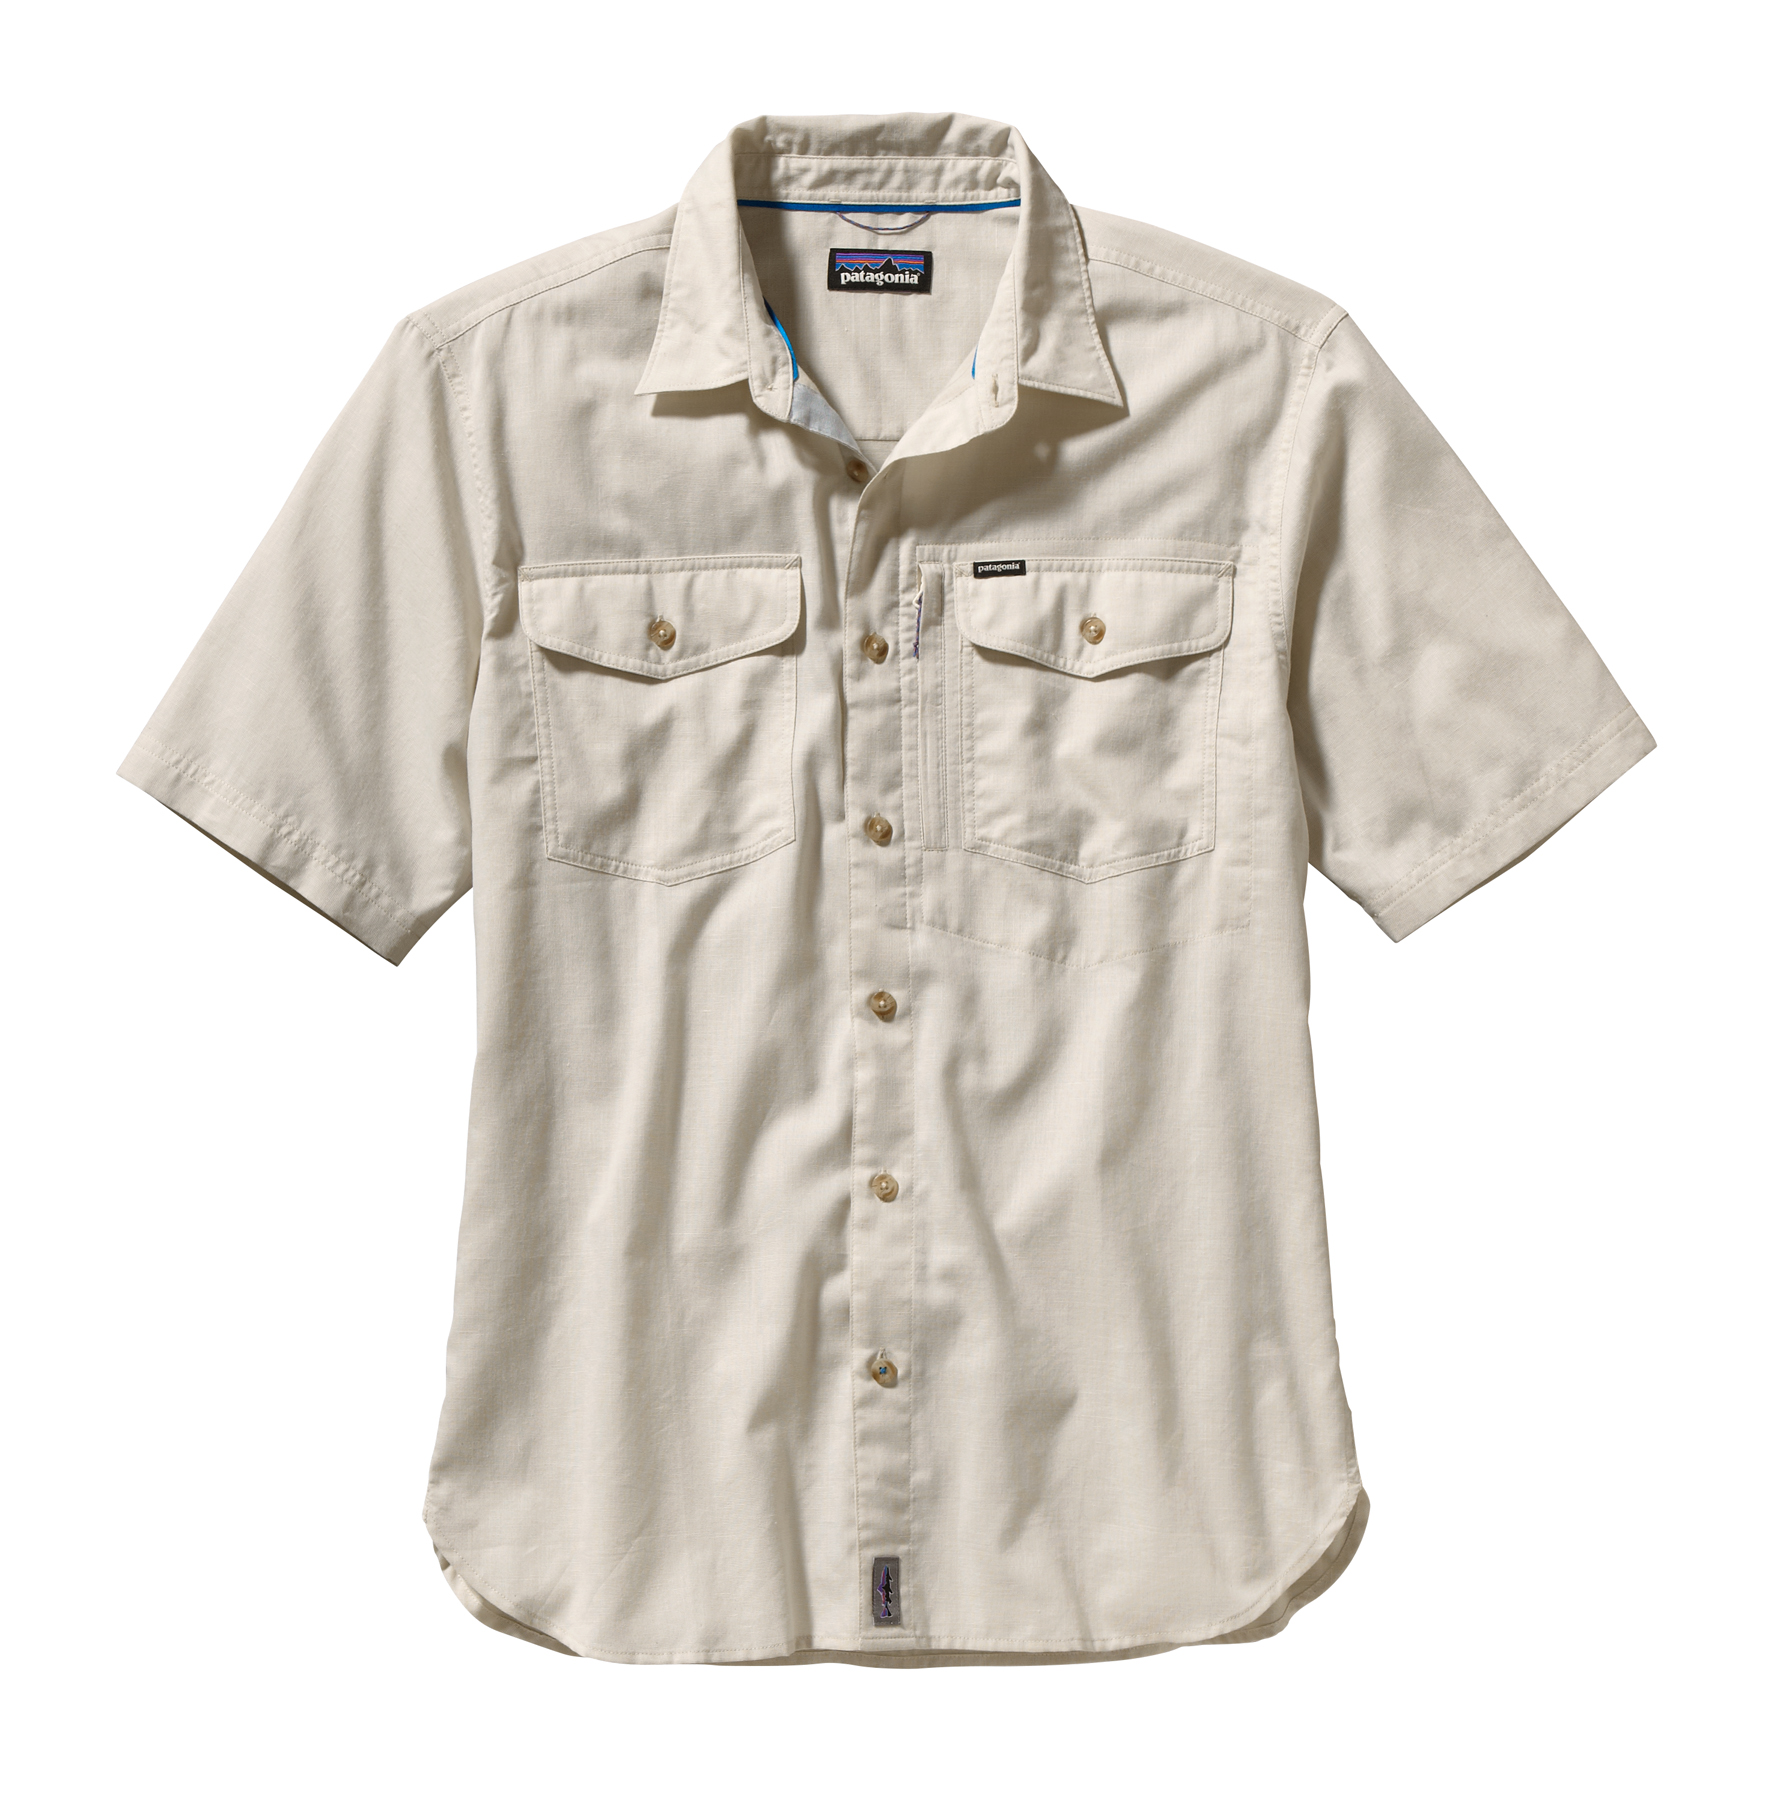 Patagonia m 39 s cayo largo shirt sp15 glasgow angling centre for Patagonia fly fishing shirt